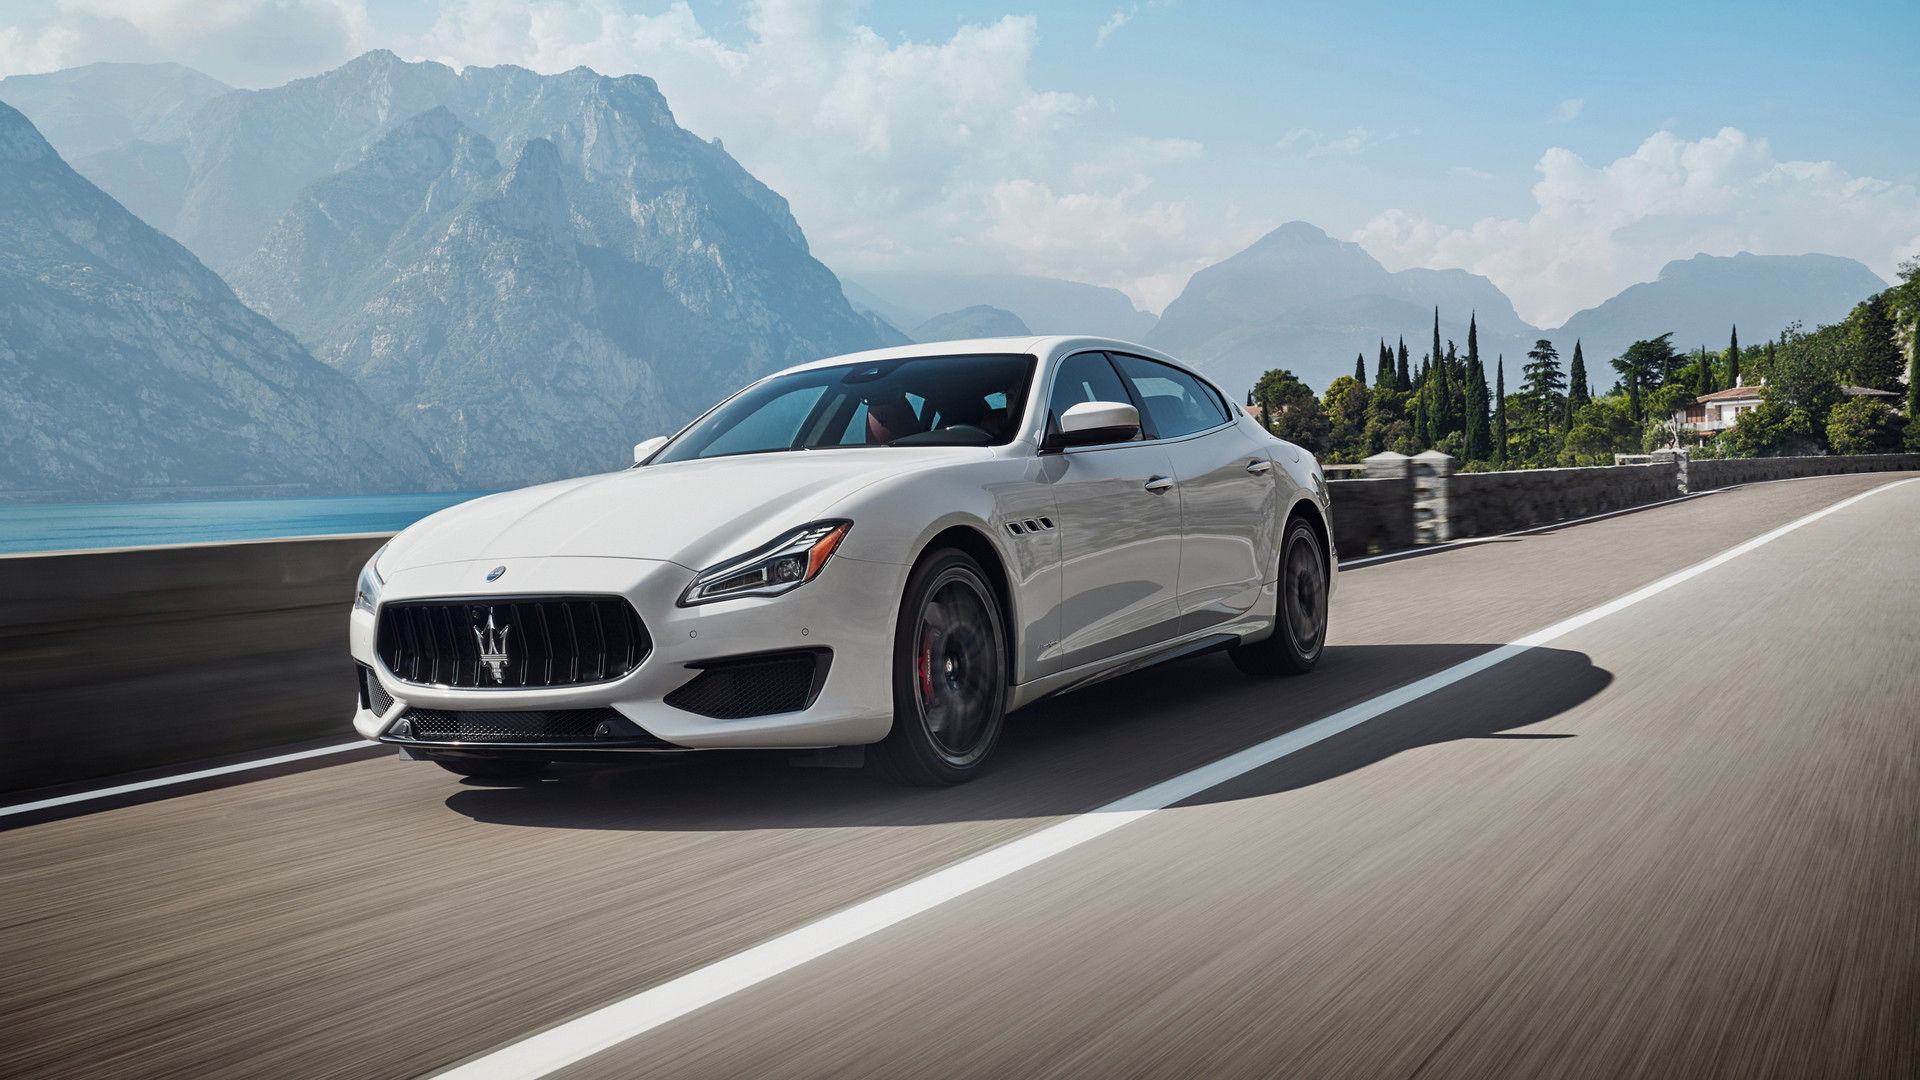 Maserati Quattroporte GTS – the luxury sedan in Bianco color on the road